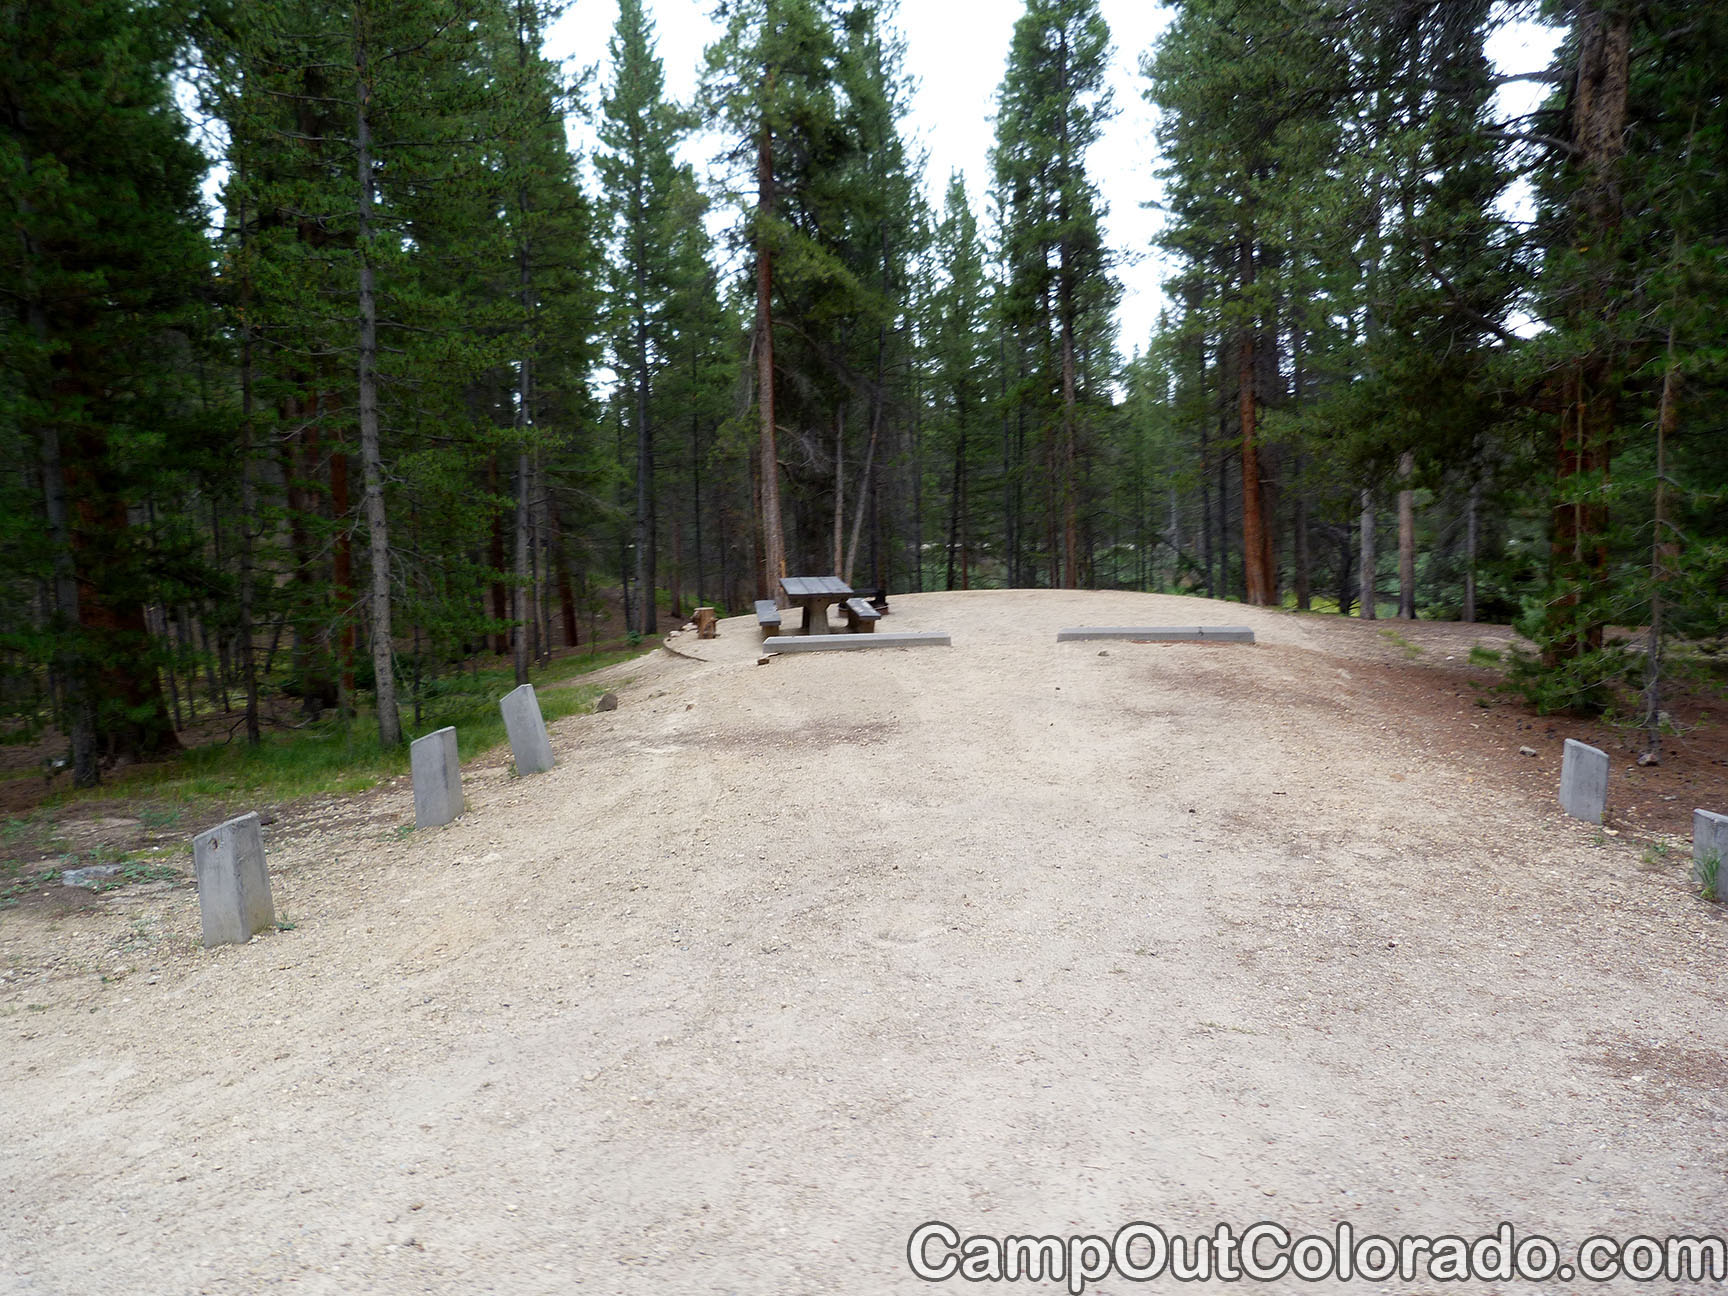 Camp-out-colorado-molly-brown-turquoise-lake-flat-camping